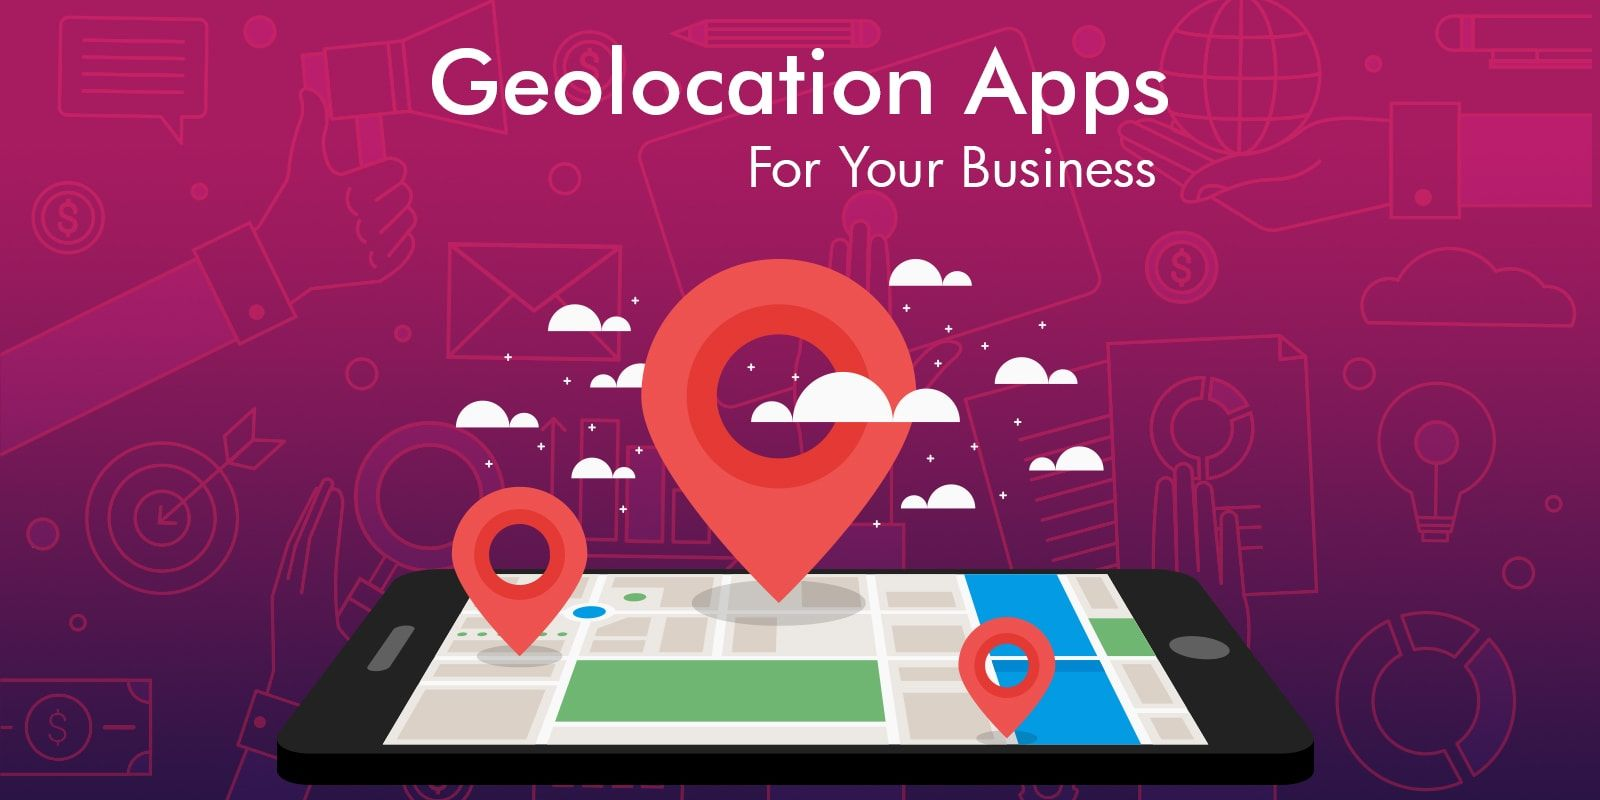 MLocation Based Mobile App Ideas For Your Business